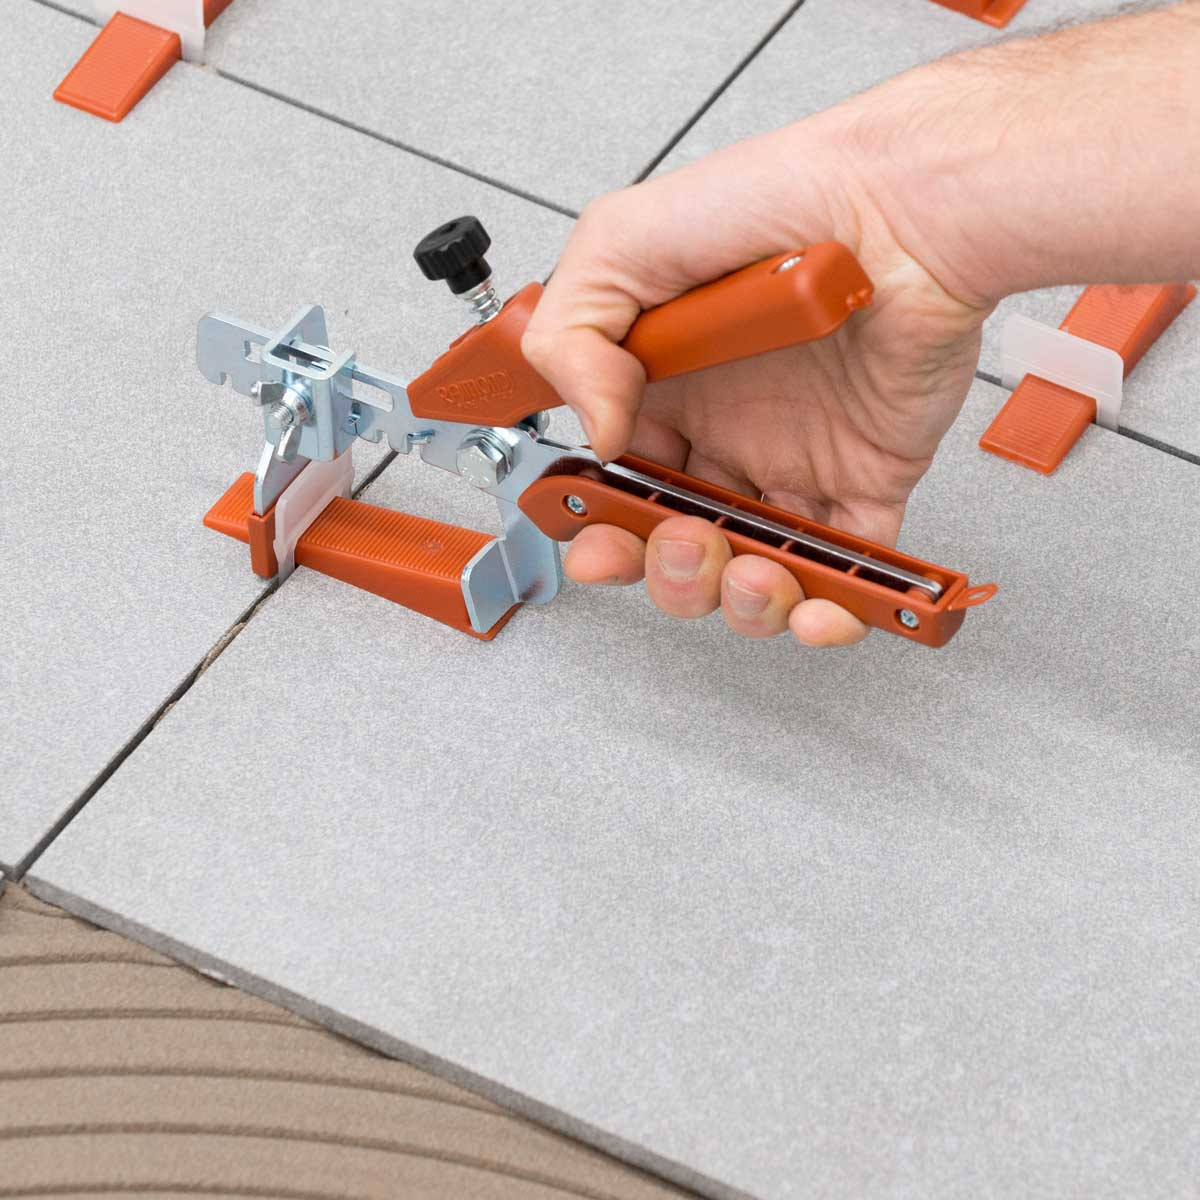 Raimondi tile leveling system regular clear clips raimondi 116in clear clip with wedges and floor pliers dailygadgetfo Image collections